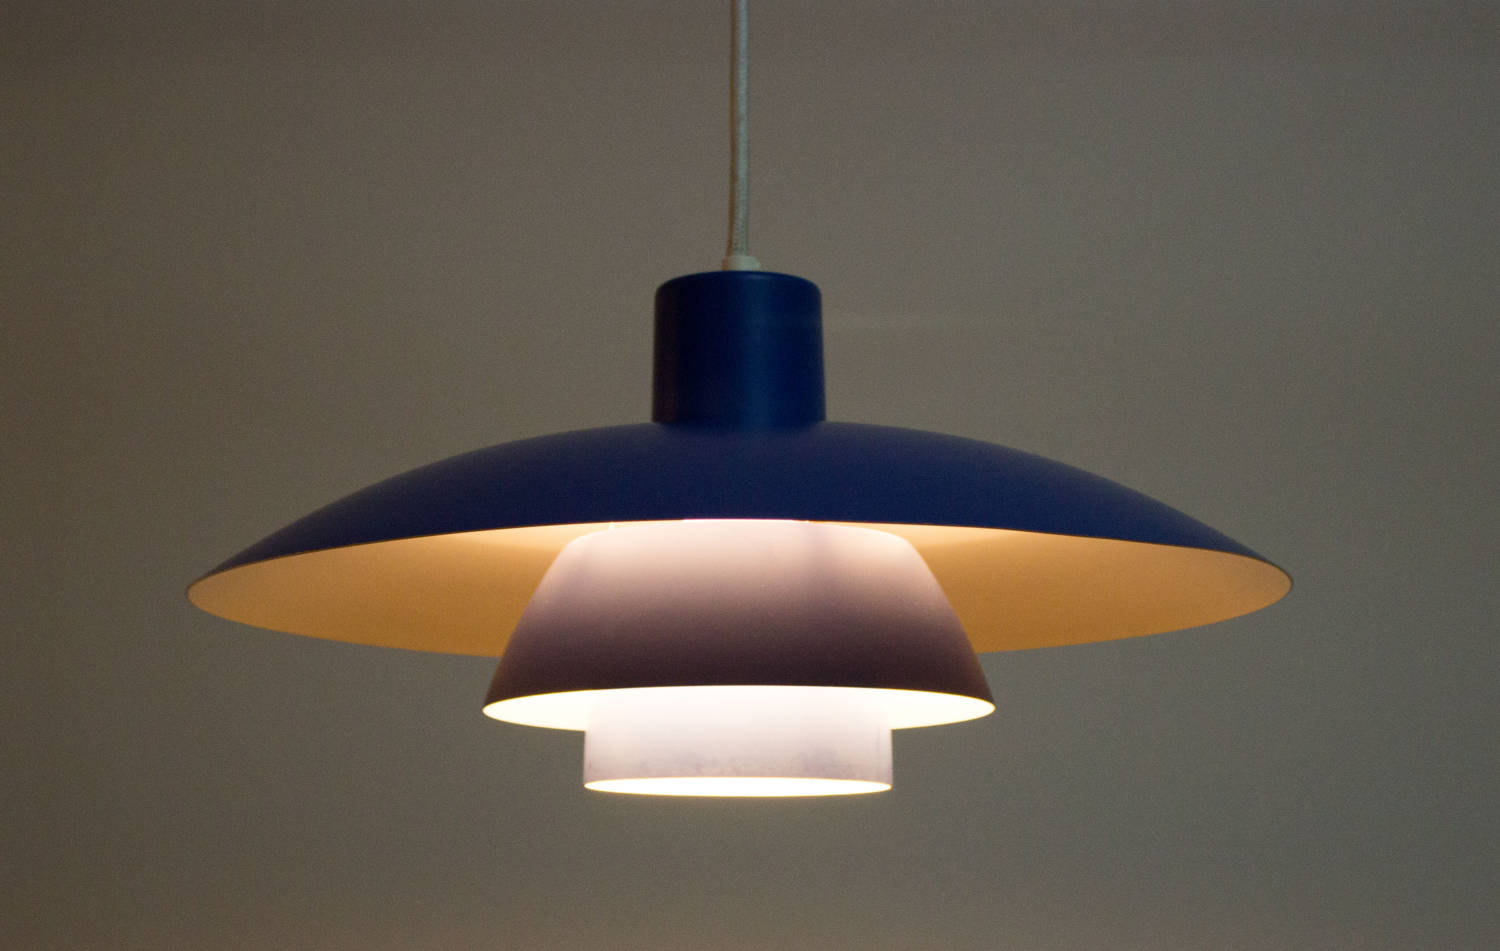 Poul Henningsen Lampe Blue Ph 4 3 Lamp By Poul Henningsen For Louis Poulsen In Good Vintage Condition